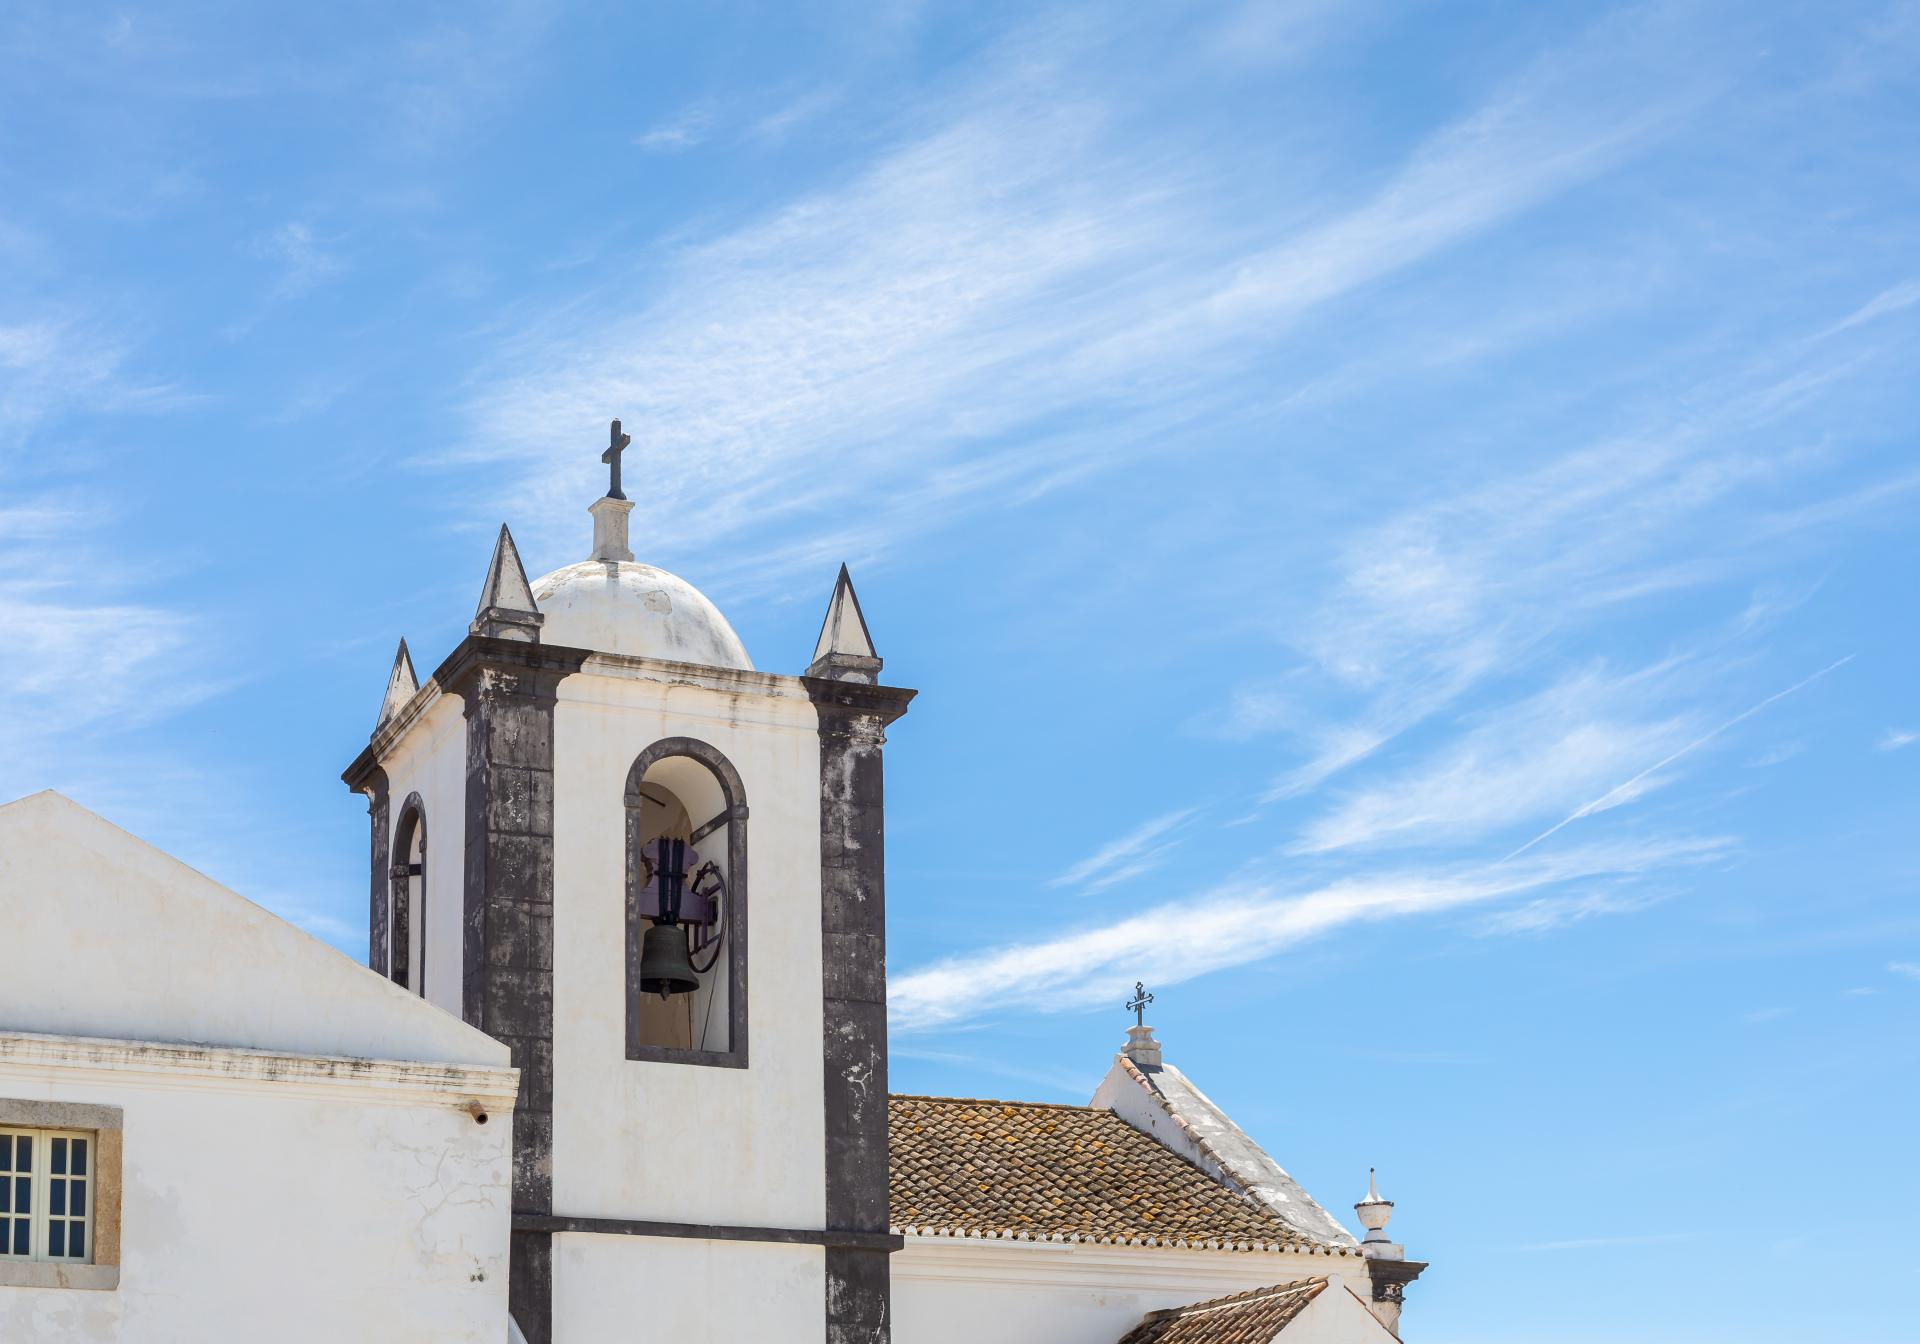 Taken at Cacela Velha, church bell tower against blue sky. Liane Ryan Photography